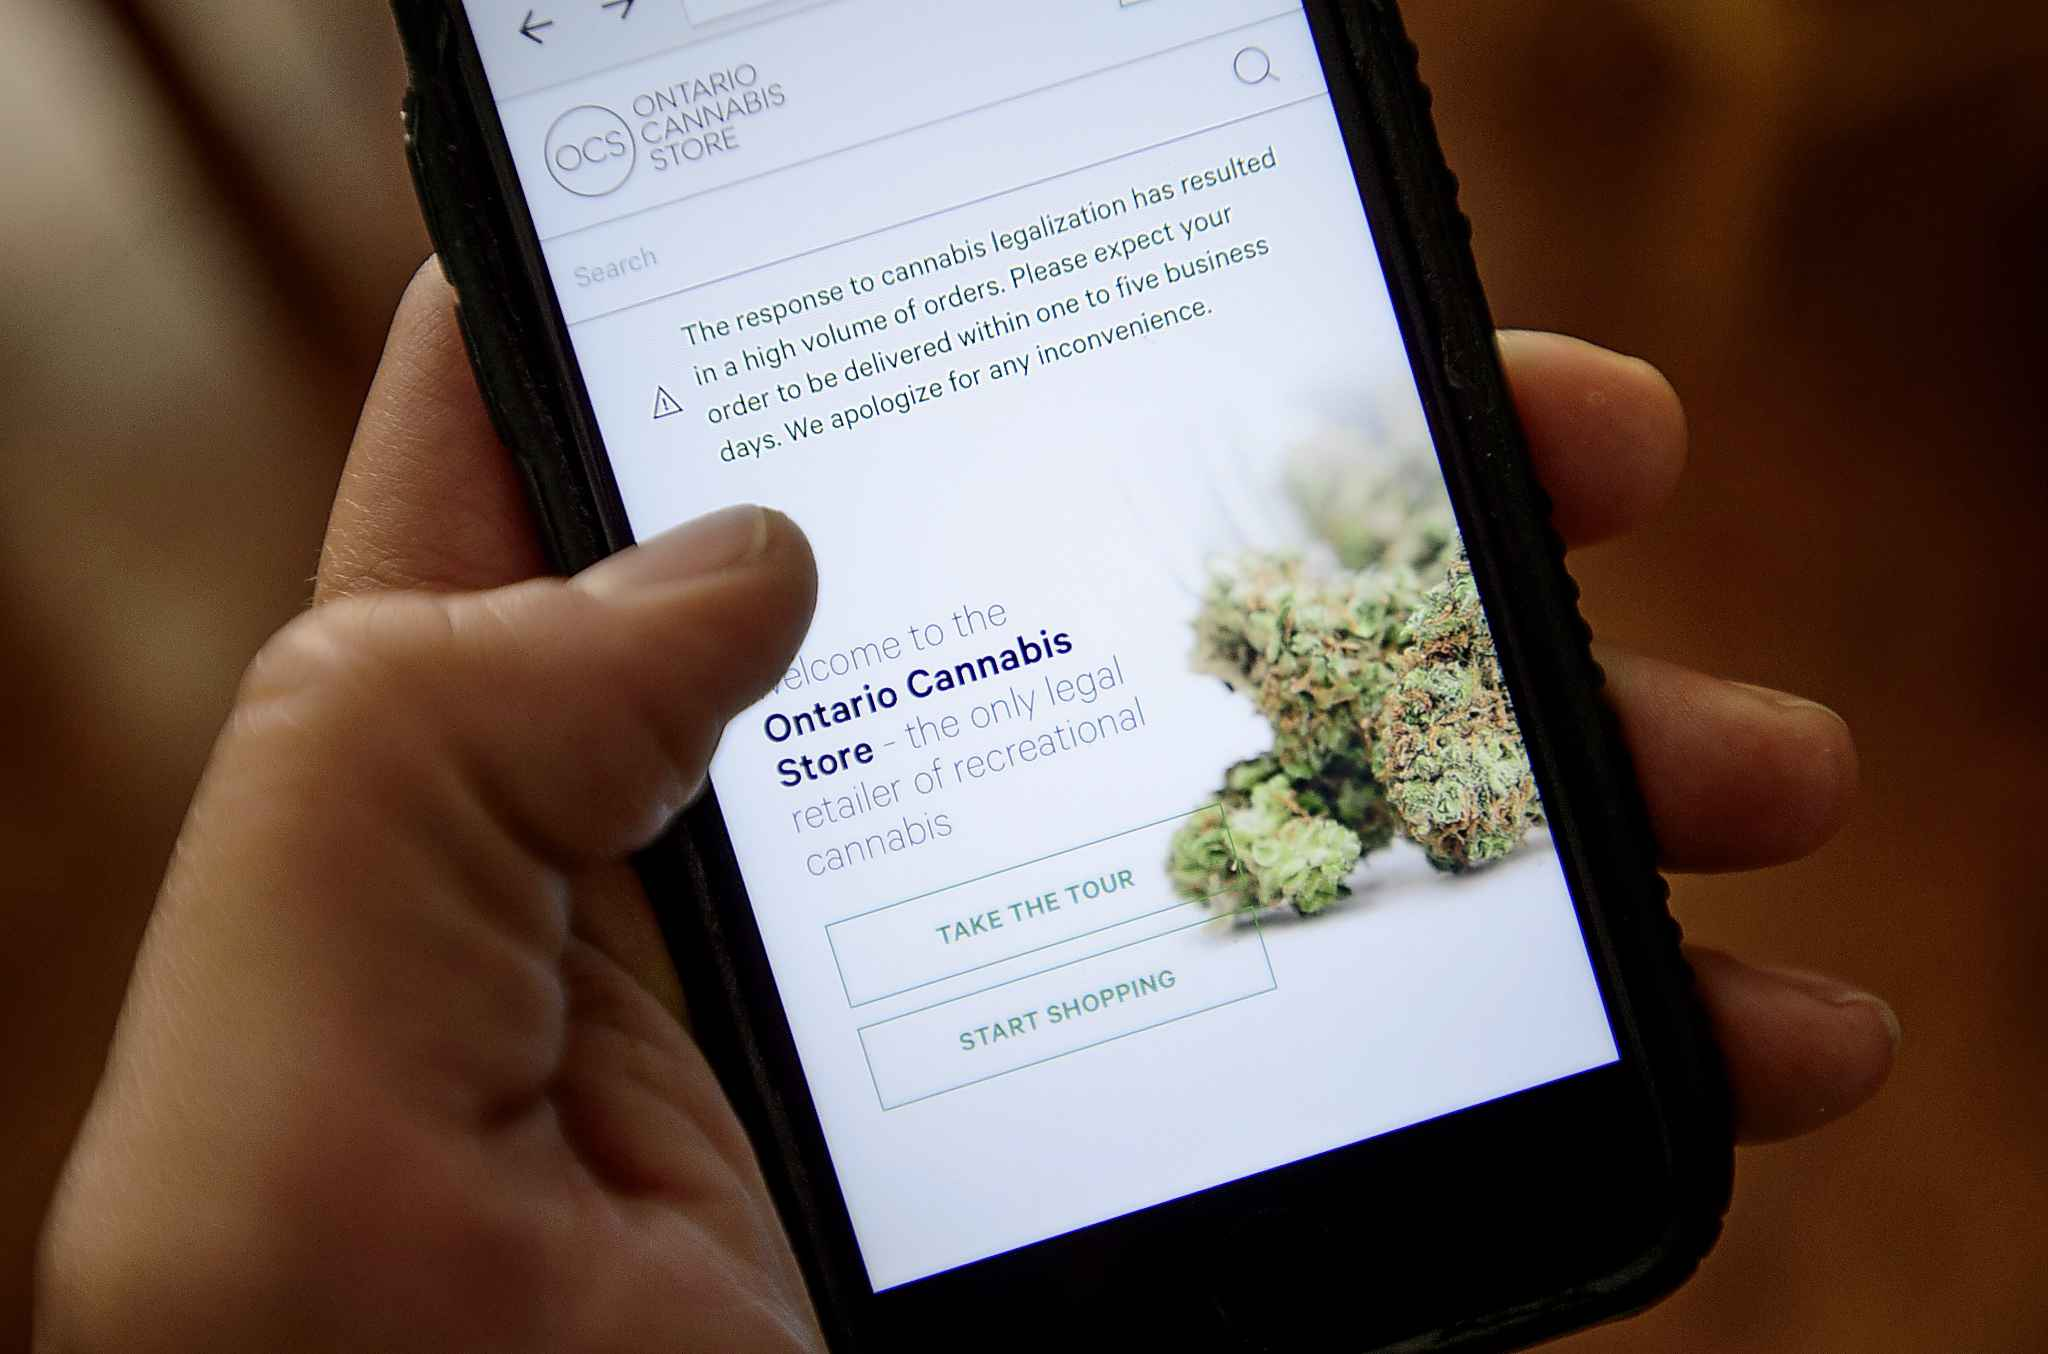 A Ontario Cannabis Store website pictured on a mobile phone Ottawa on Thursday, Oct. 18, 2018. THE CANADIAN PRESS/Sean Kilpatrick